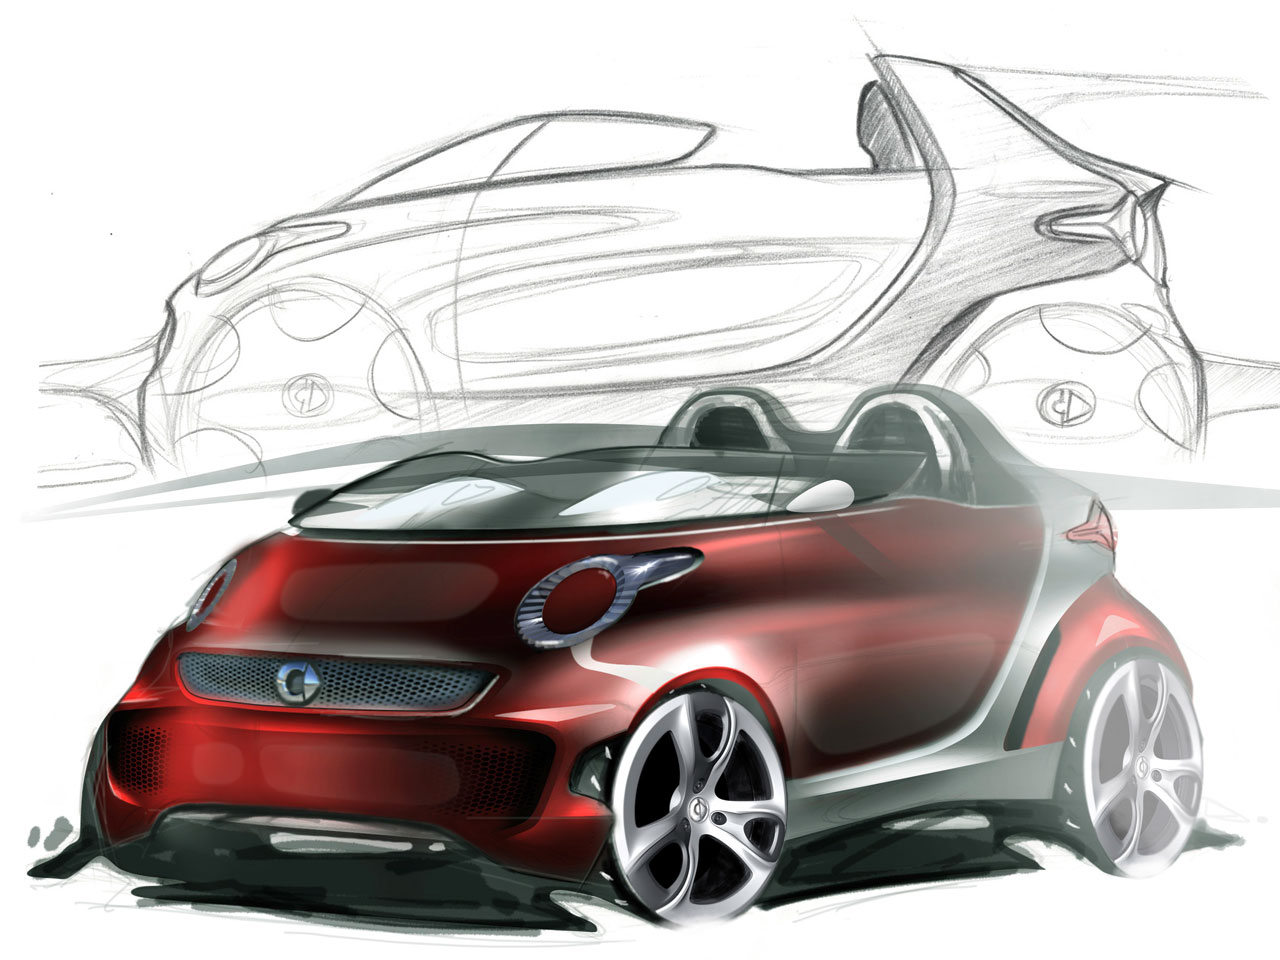 Smart Forspeed Concept Design Sketch on Volvo S60 Sketch